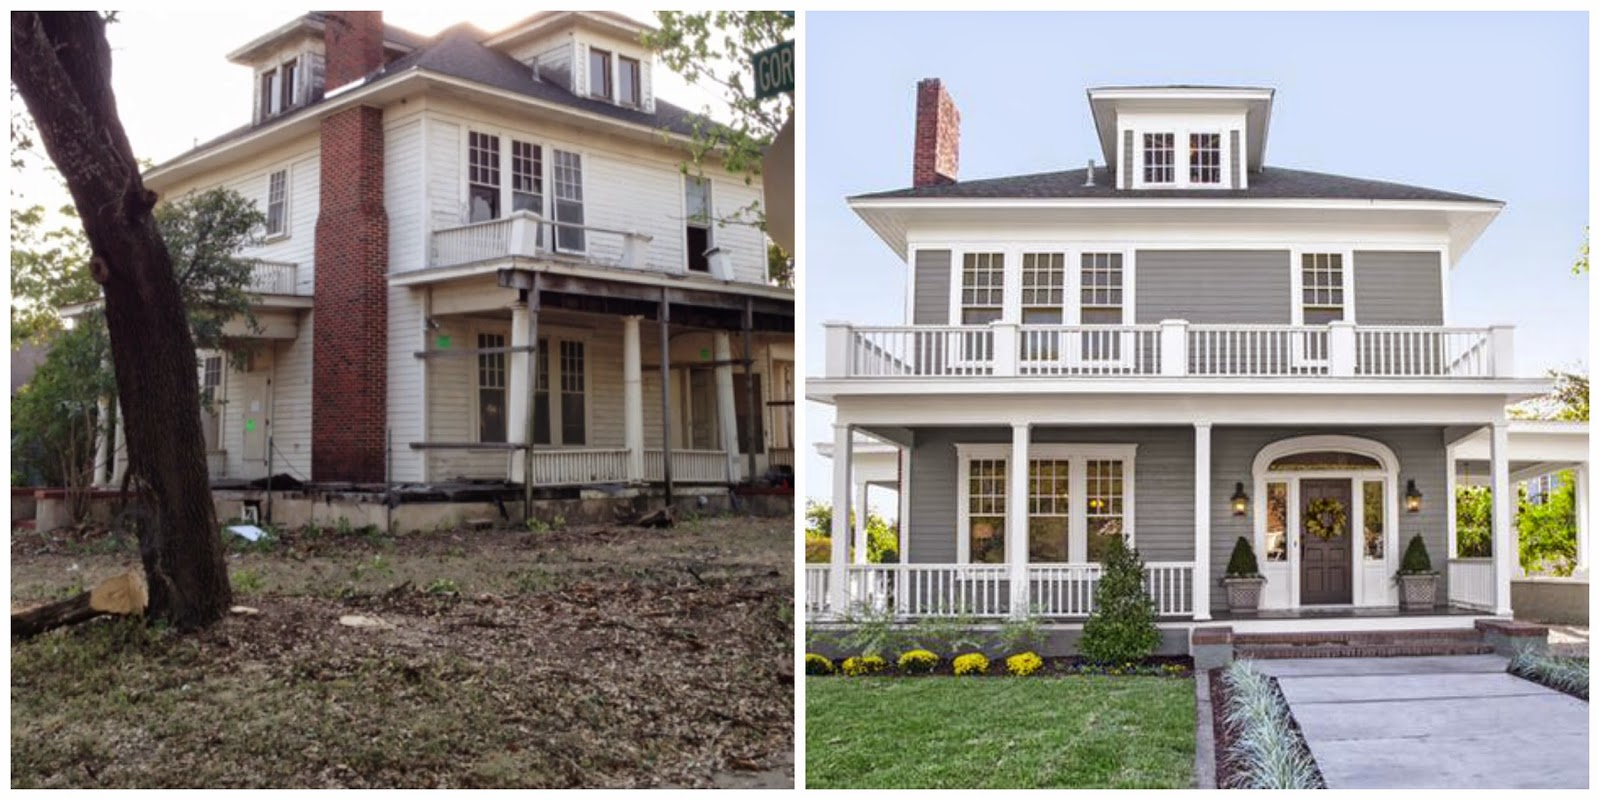 Before & After Fixer Upper | My HGTV | Pinterest | Curb ...  |Fixer Upper Before And After